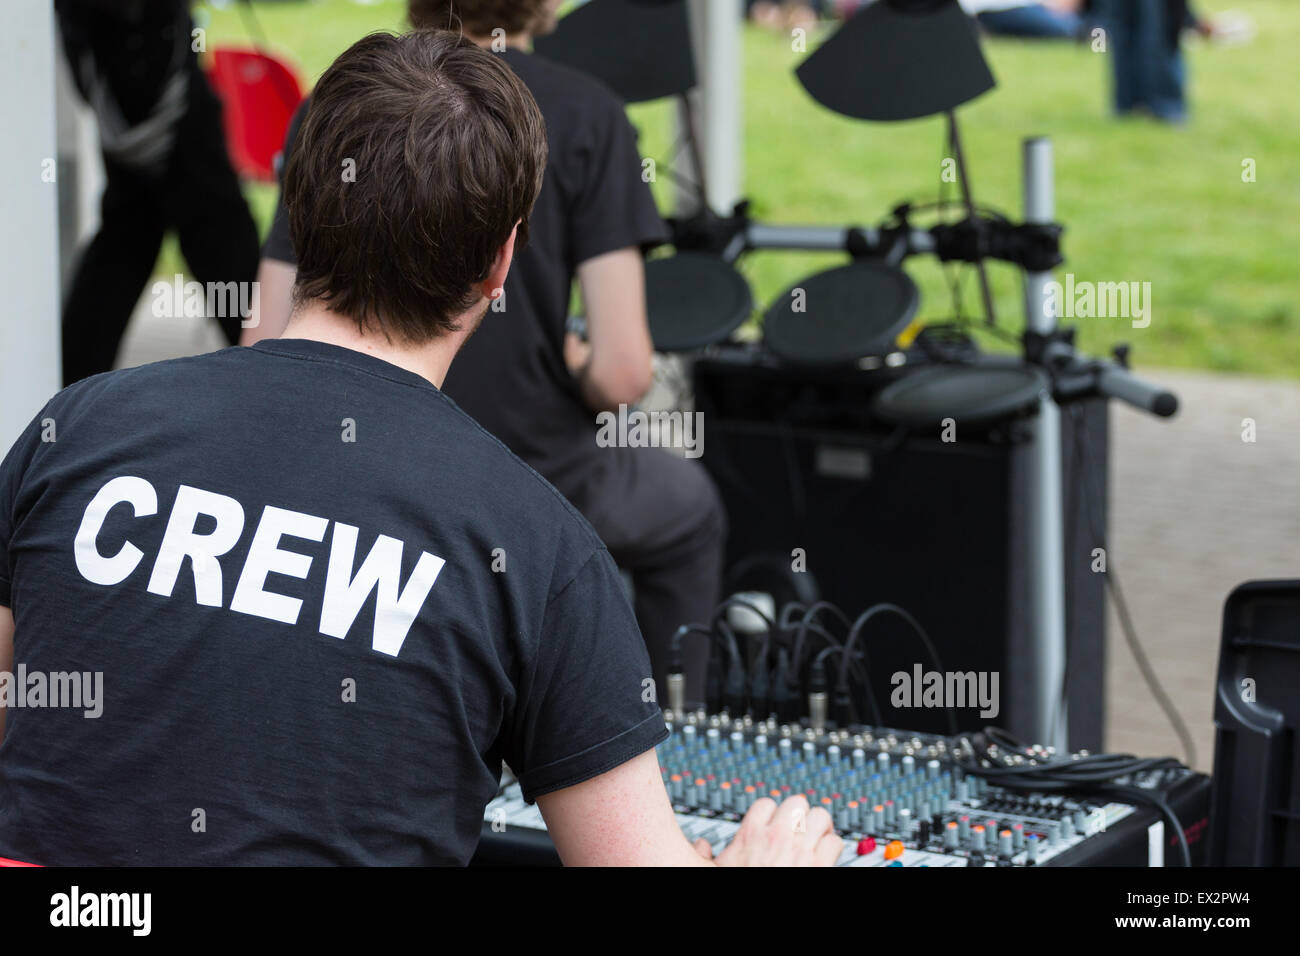 A rock band's sound engineer weras a t-shirt reading 'Crew' - Stock Image